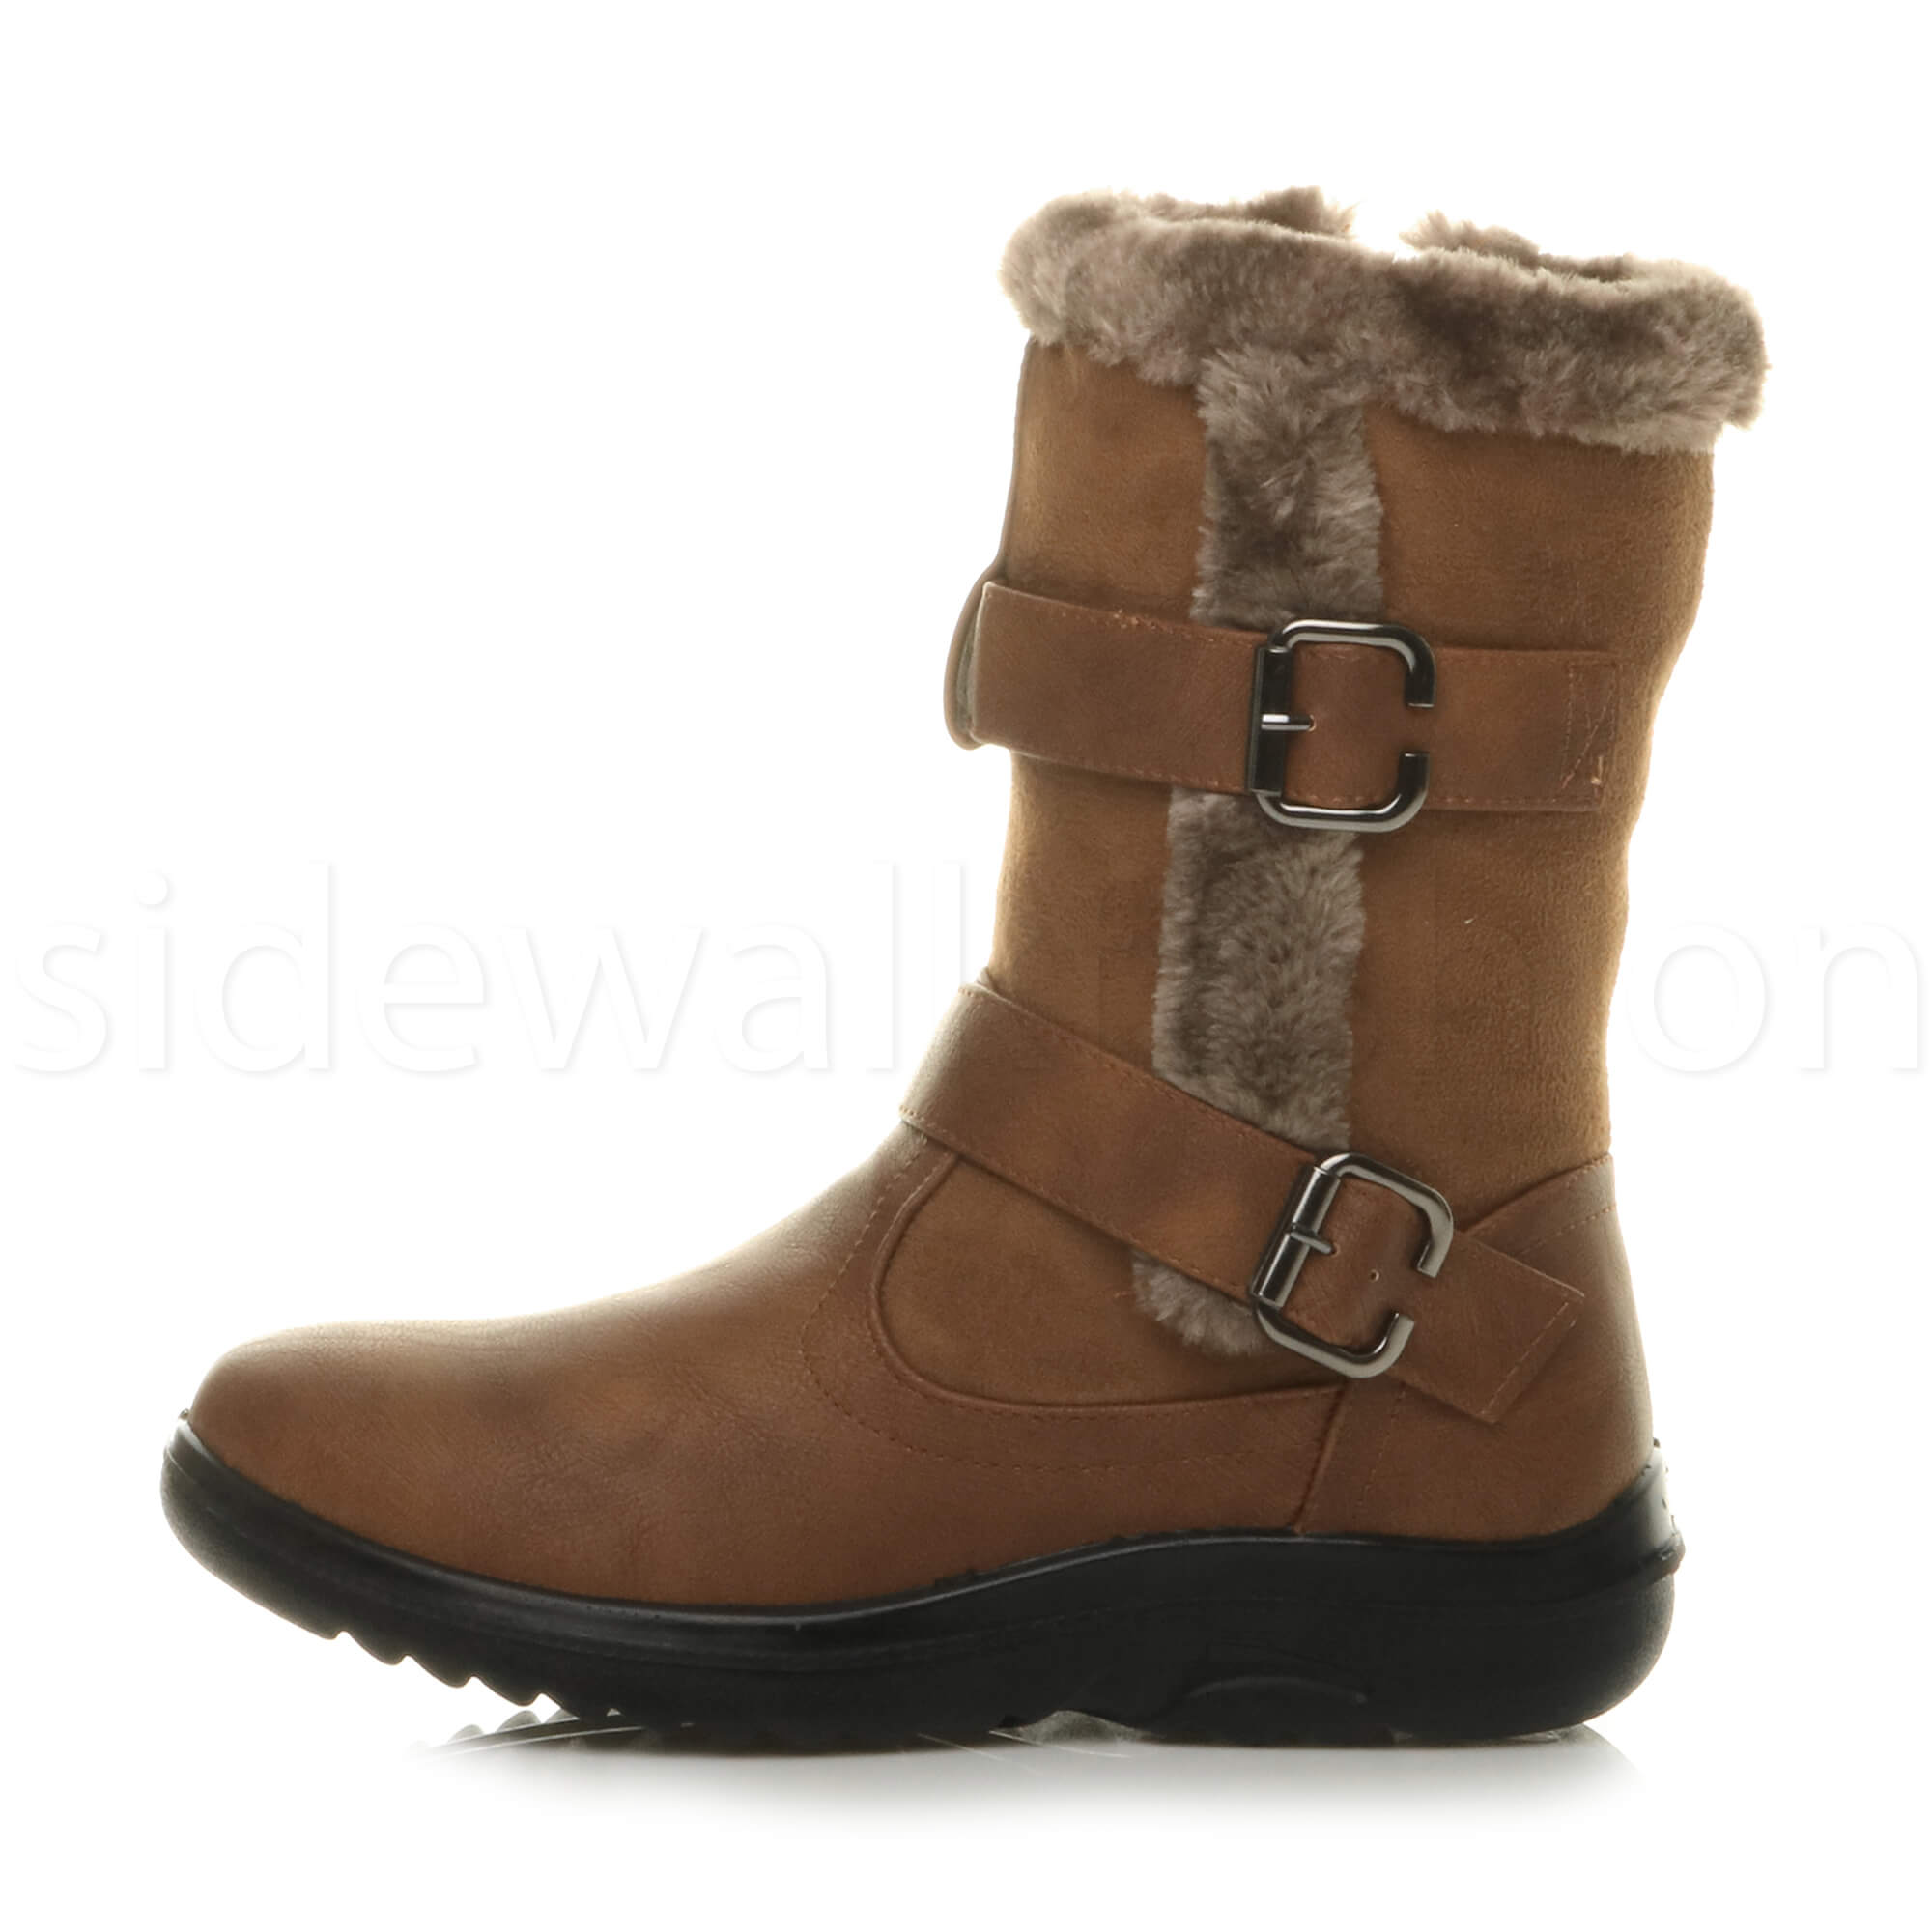 Womens-ladies-low-mid-wedge-heel-grip-sole-winter-fur-trim-comfort-ankle-boots